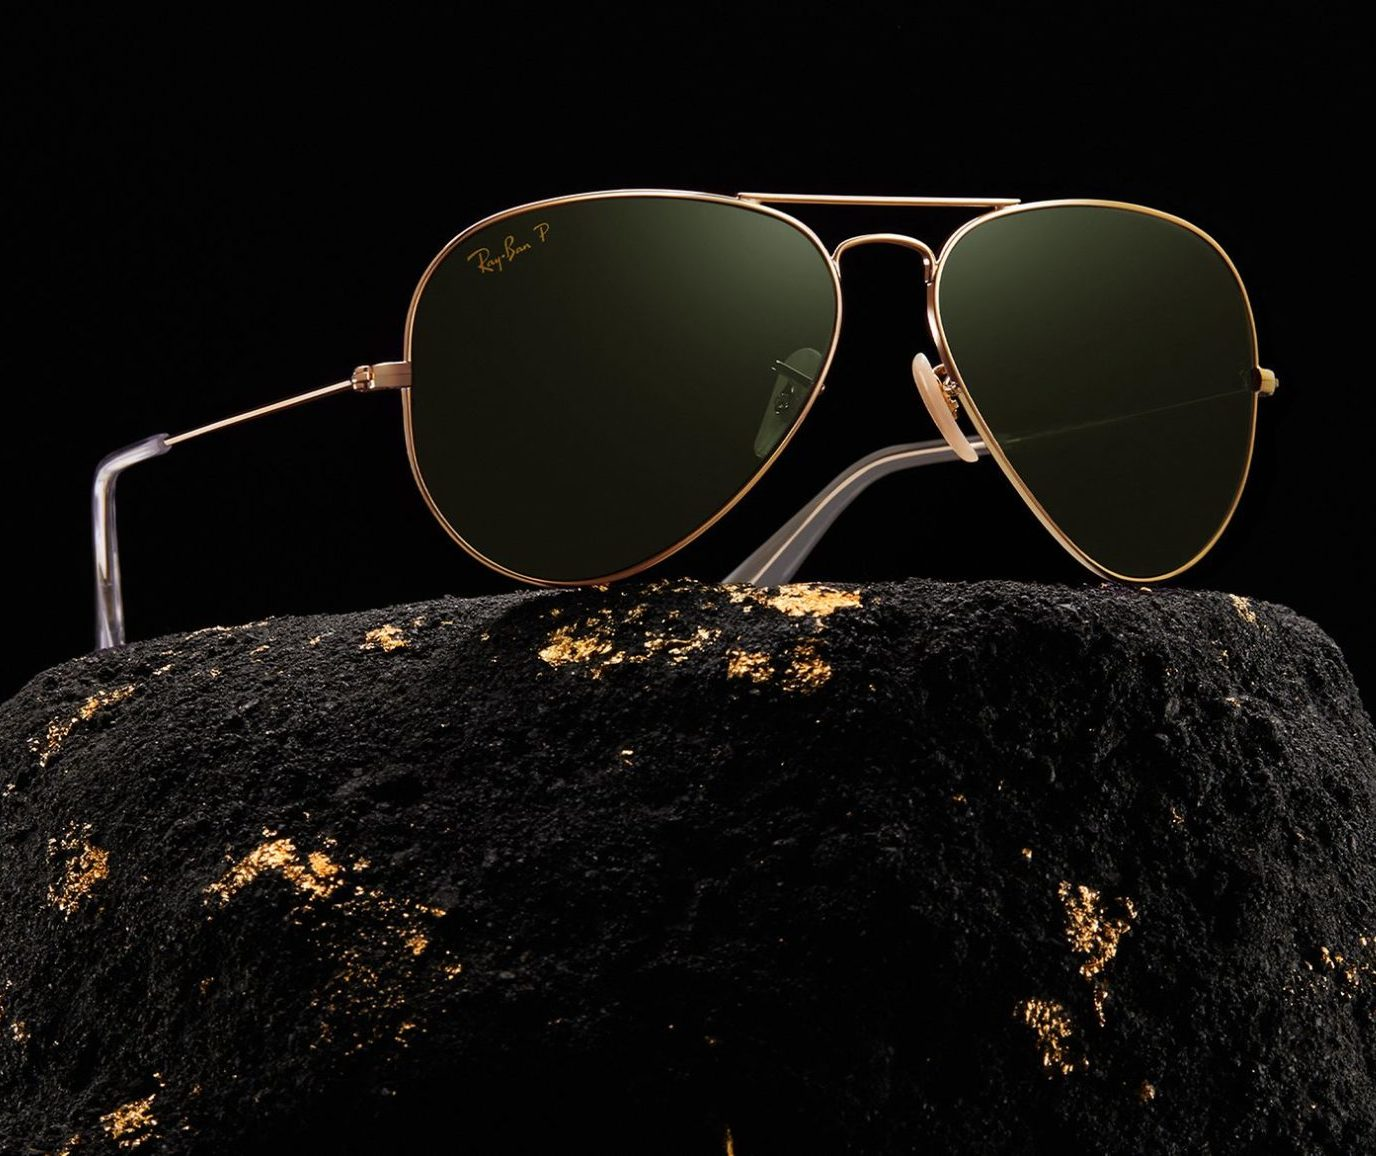 RAY-BAN LIMITED AVIATOR SOLID GOLD